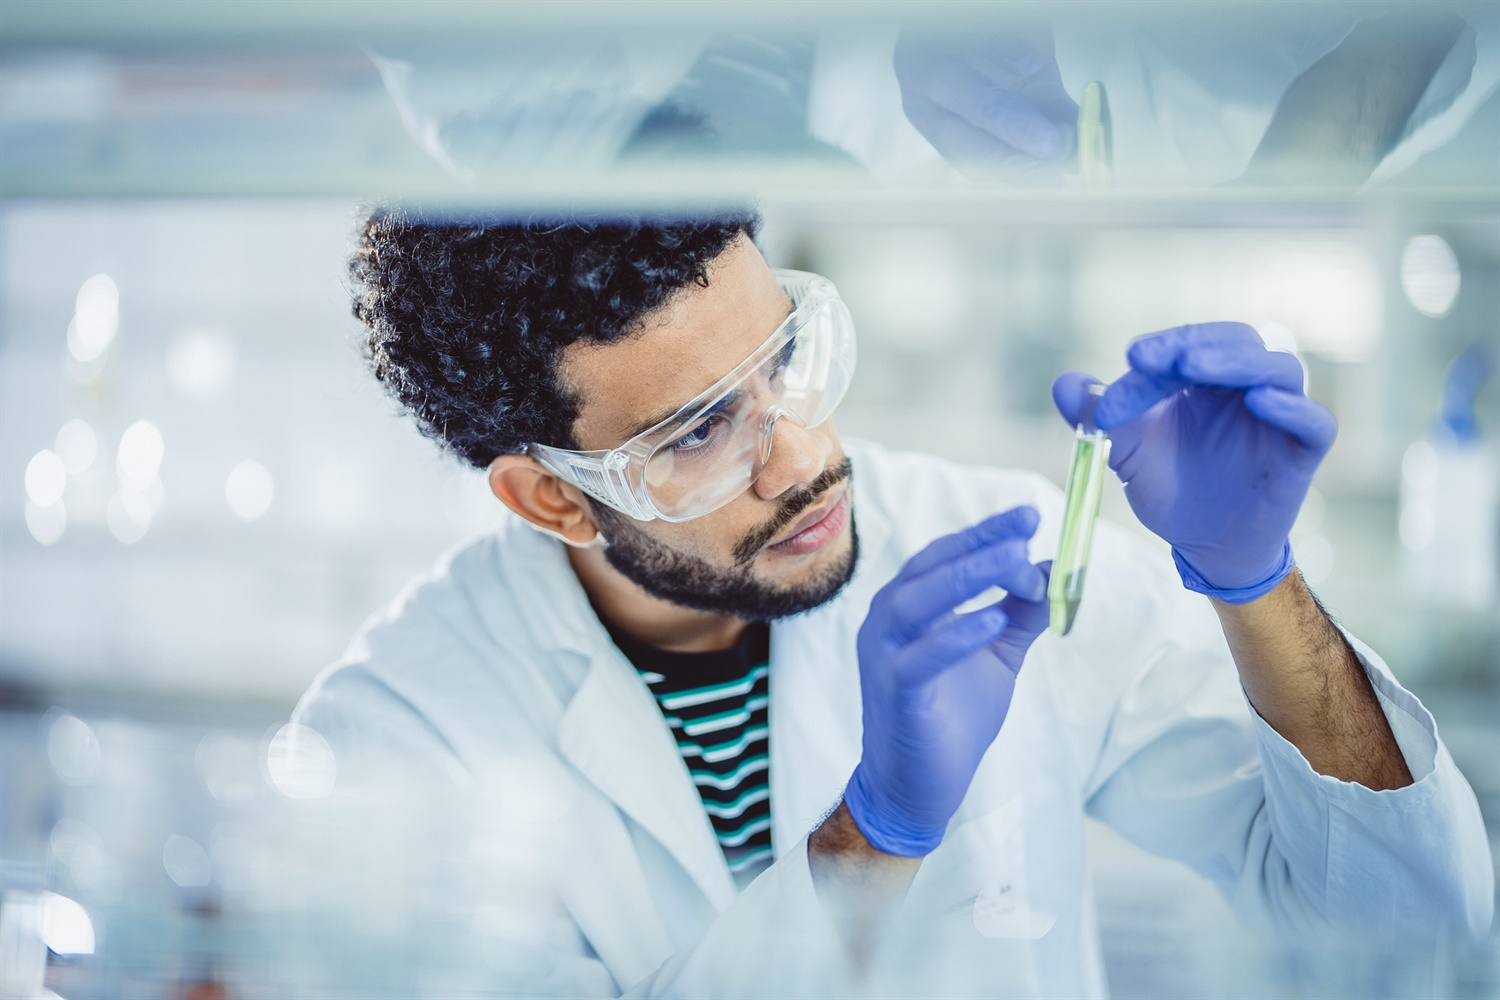 World's largest potential coronavirus treatments trial rolled out in UK https://lnkd.in/damiHJB from National Health Executive #clinicaltrials #lifesciences #pharma